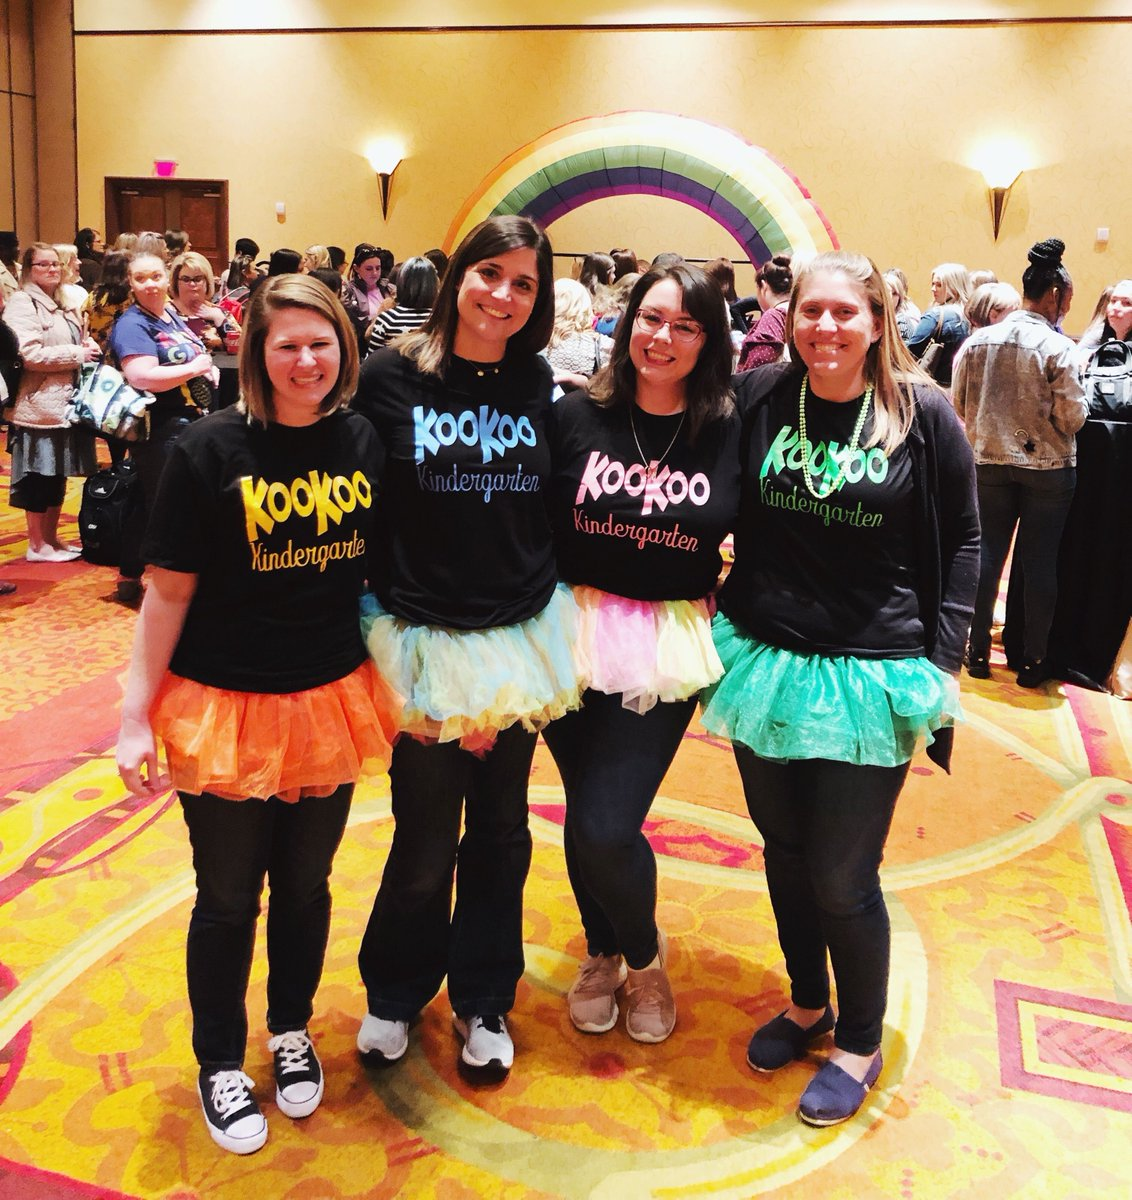 Tutus for @KooKooKangaRoo and koo koo for kindergarten!  Our Texas K conference this week was so much fun! #SDEevents #fosterjoyfullearning <br>http://pic.twitter.com/F8xpazfiRd